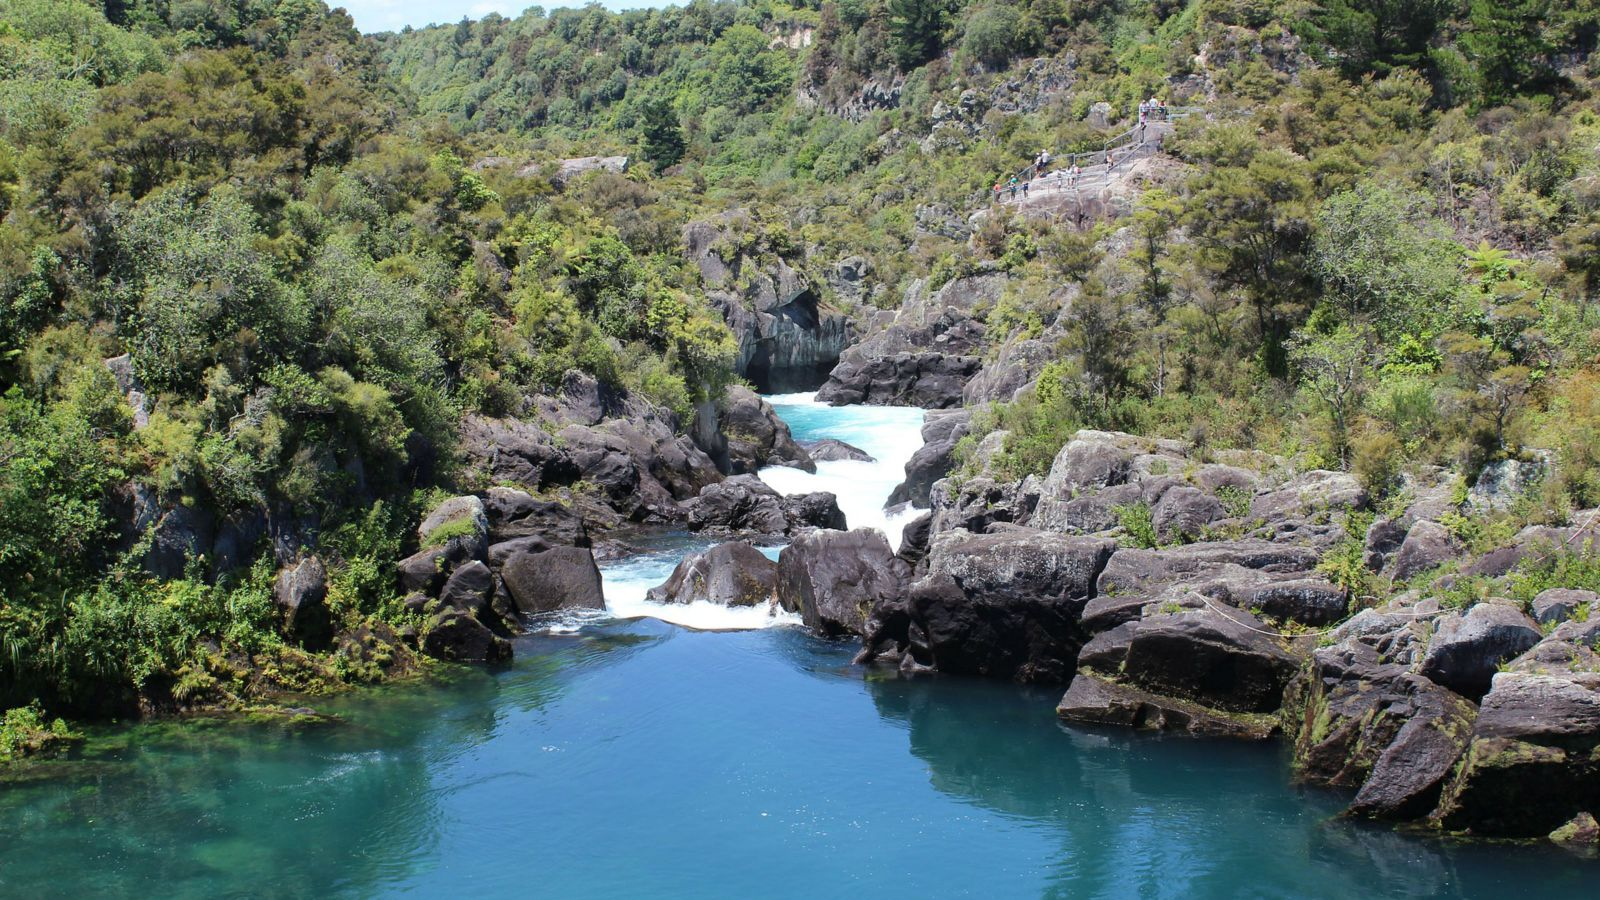 A blue river, in the centre of the photo, flows over rocks and into a pool, surrounded by greenery